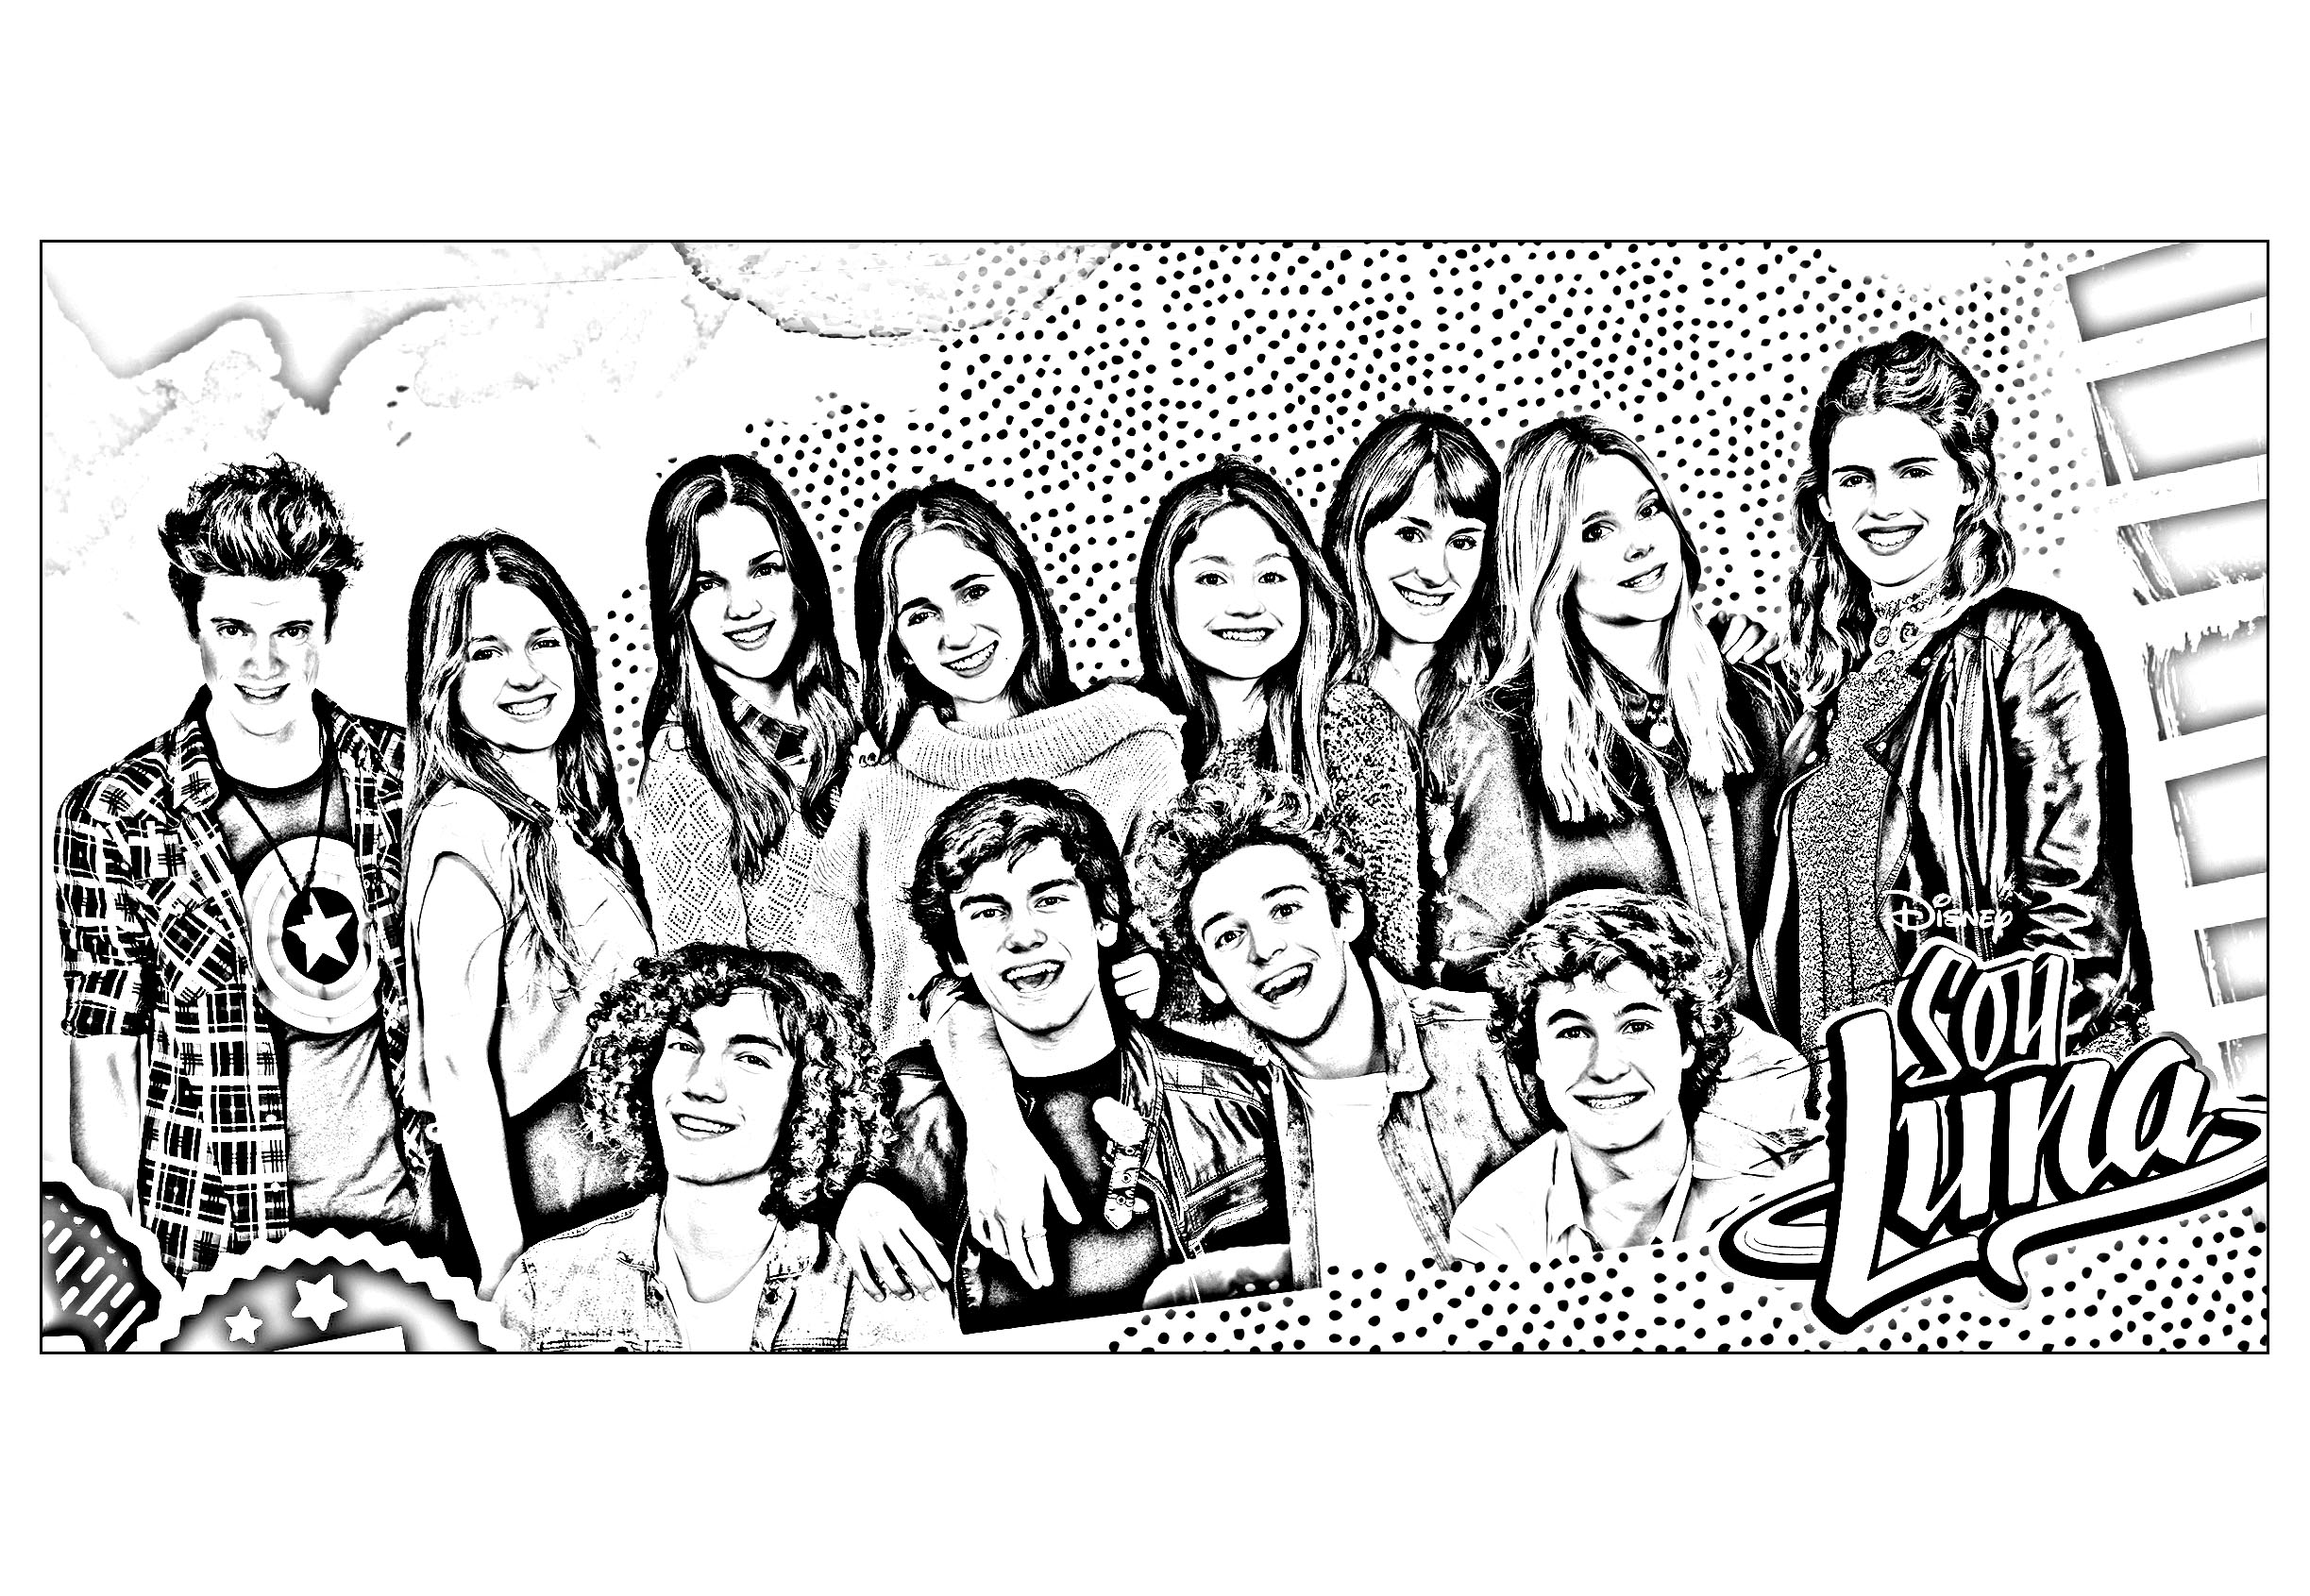 Free Soy Luna coloring page to print and color